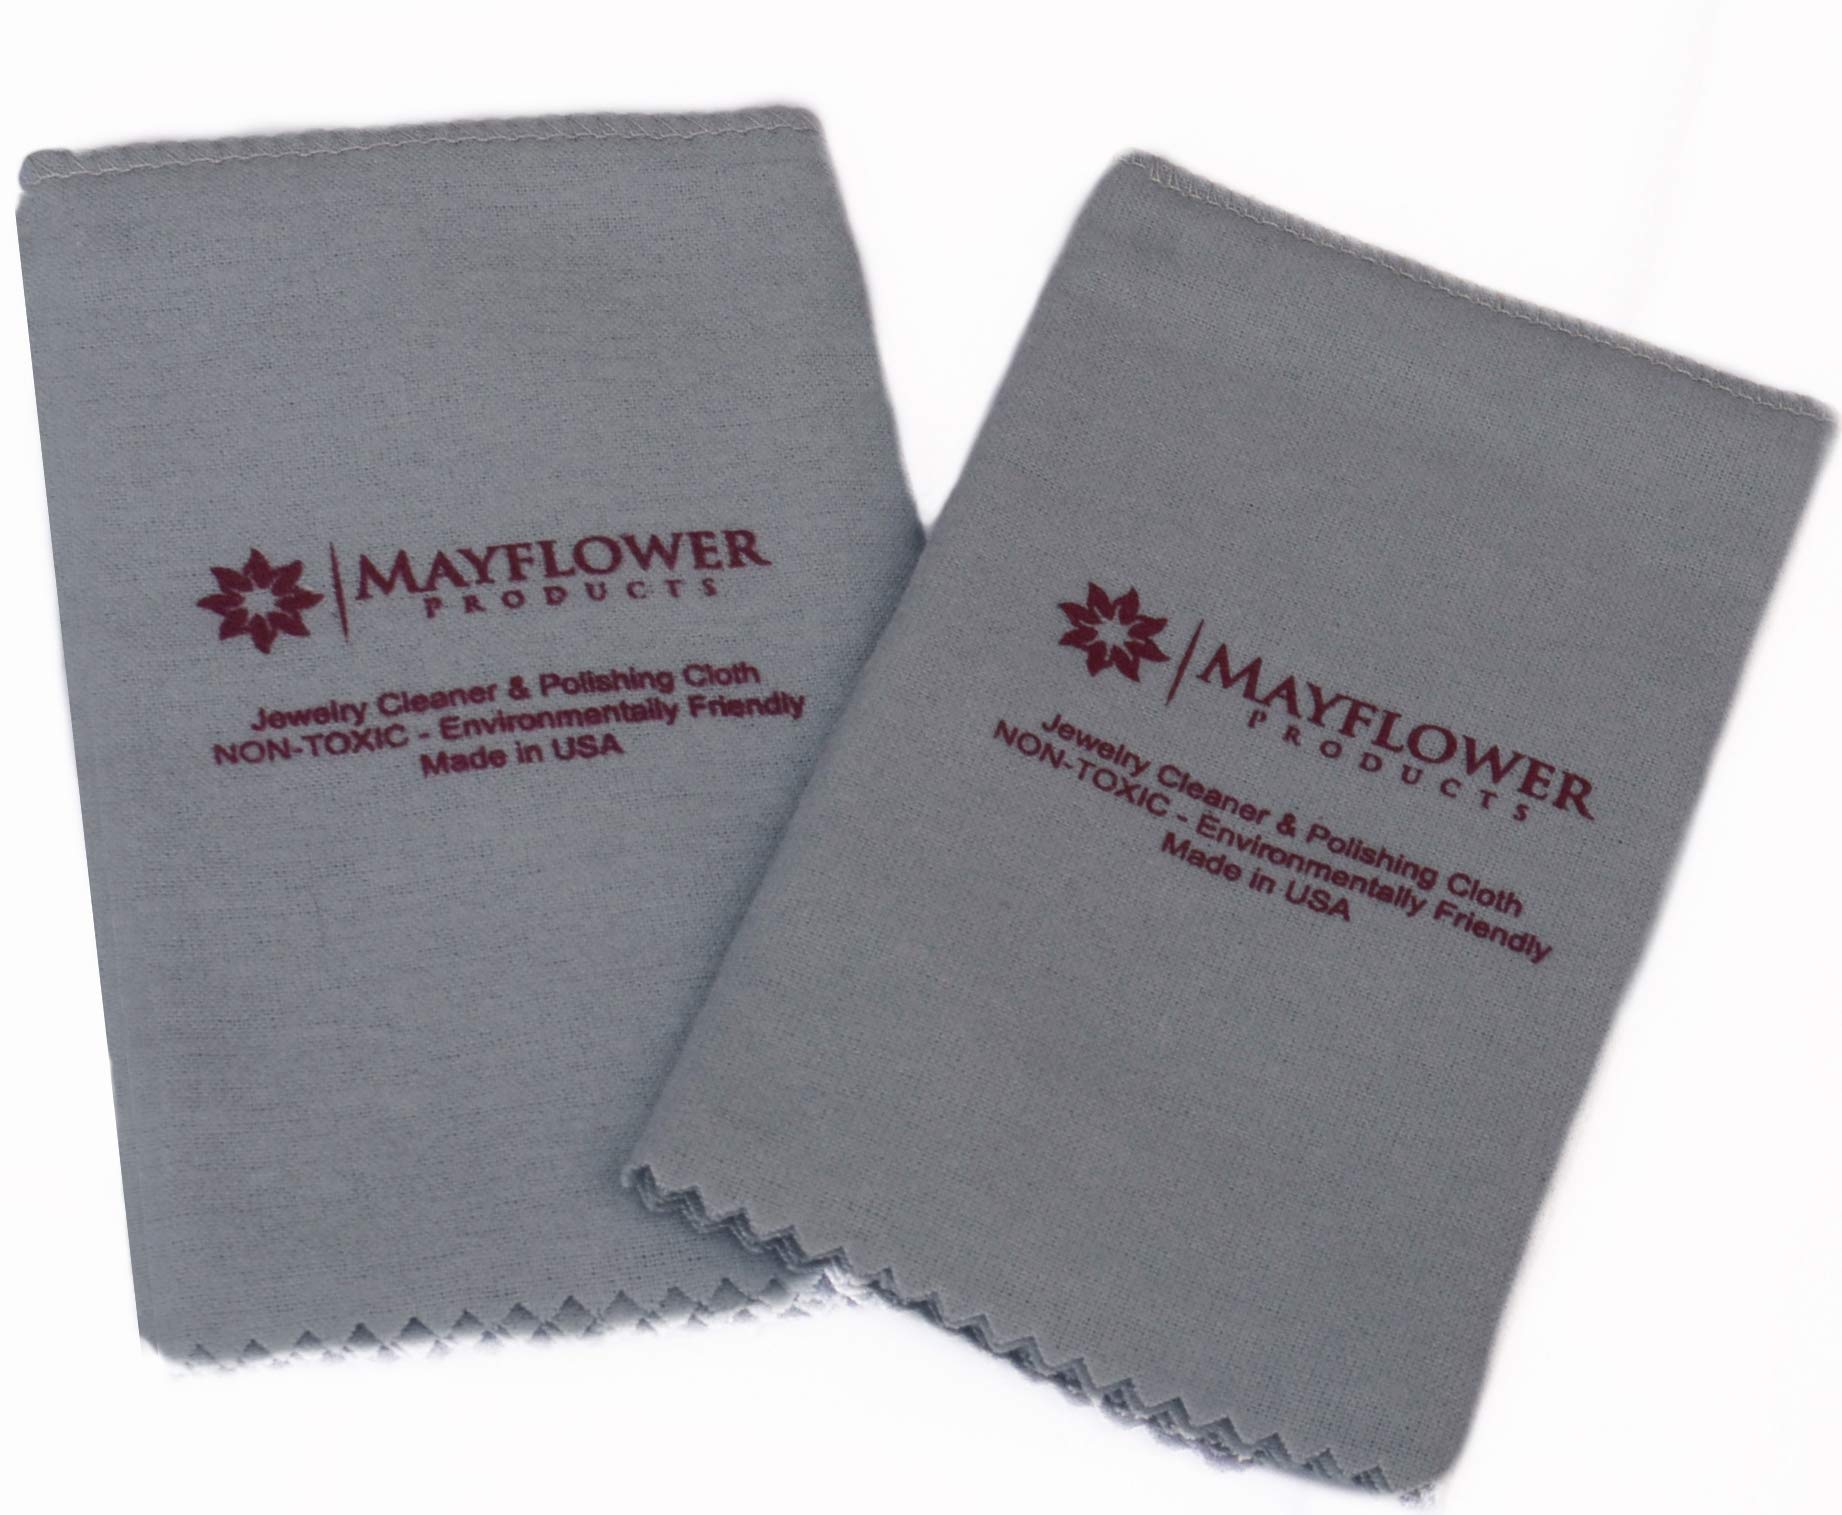 Pro Size Polishing Cloth Set of 2 Large Jewelry Cleaning Cloths| 100% Cotton| Made in USA for Gold Silver and Platinum Jewelry Coins Watches and Silverware| Tarnish Remover| Keep Jewelry Shining by Mayflower Products